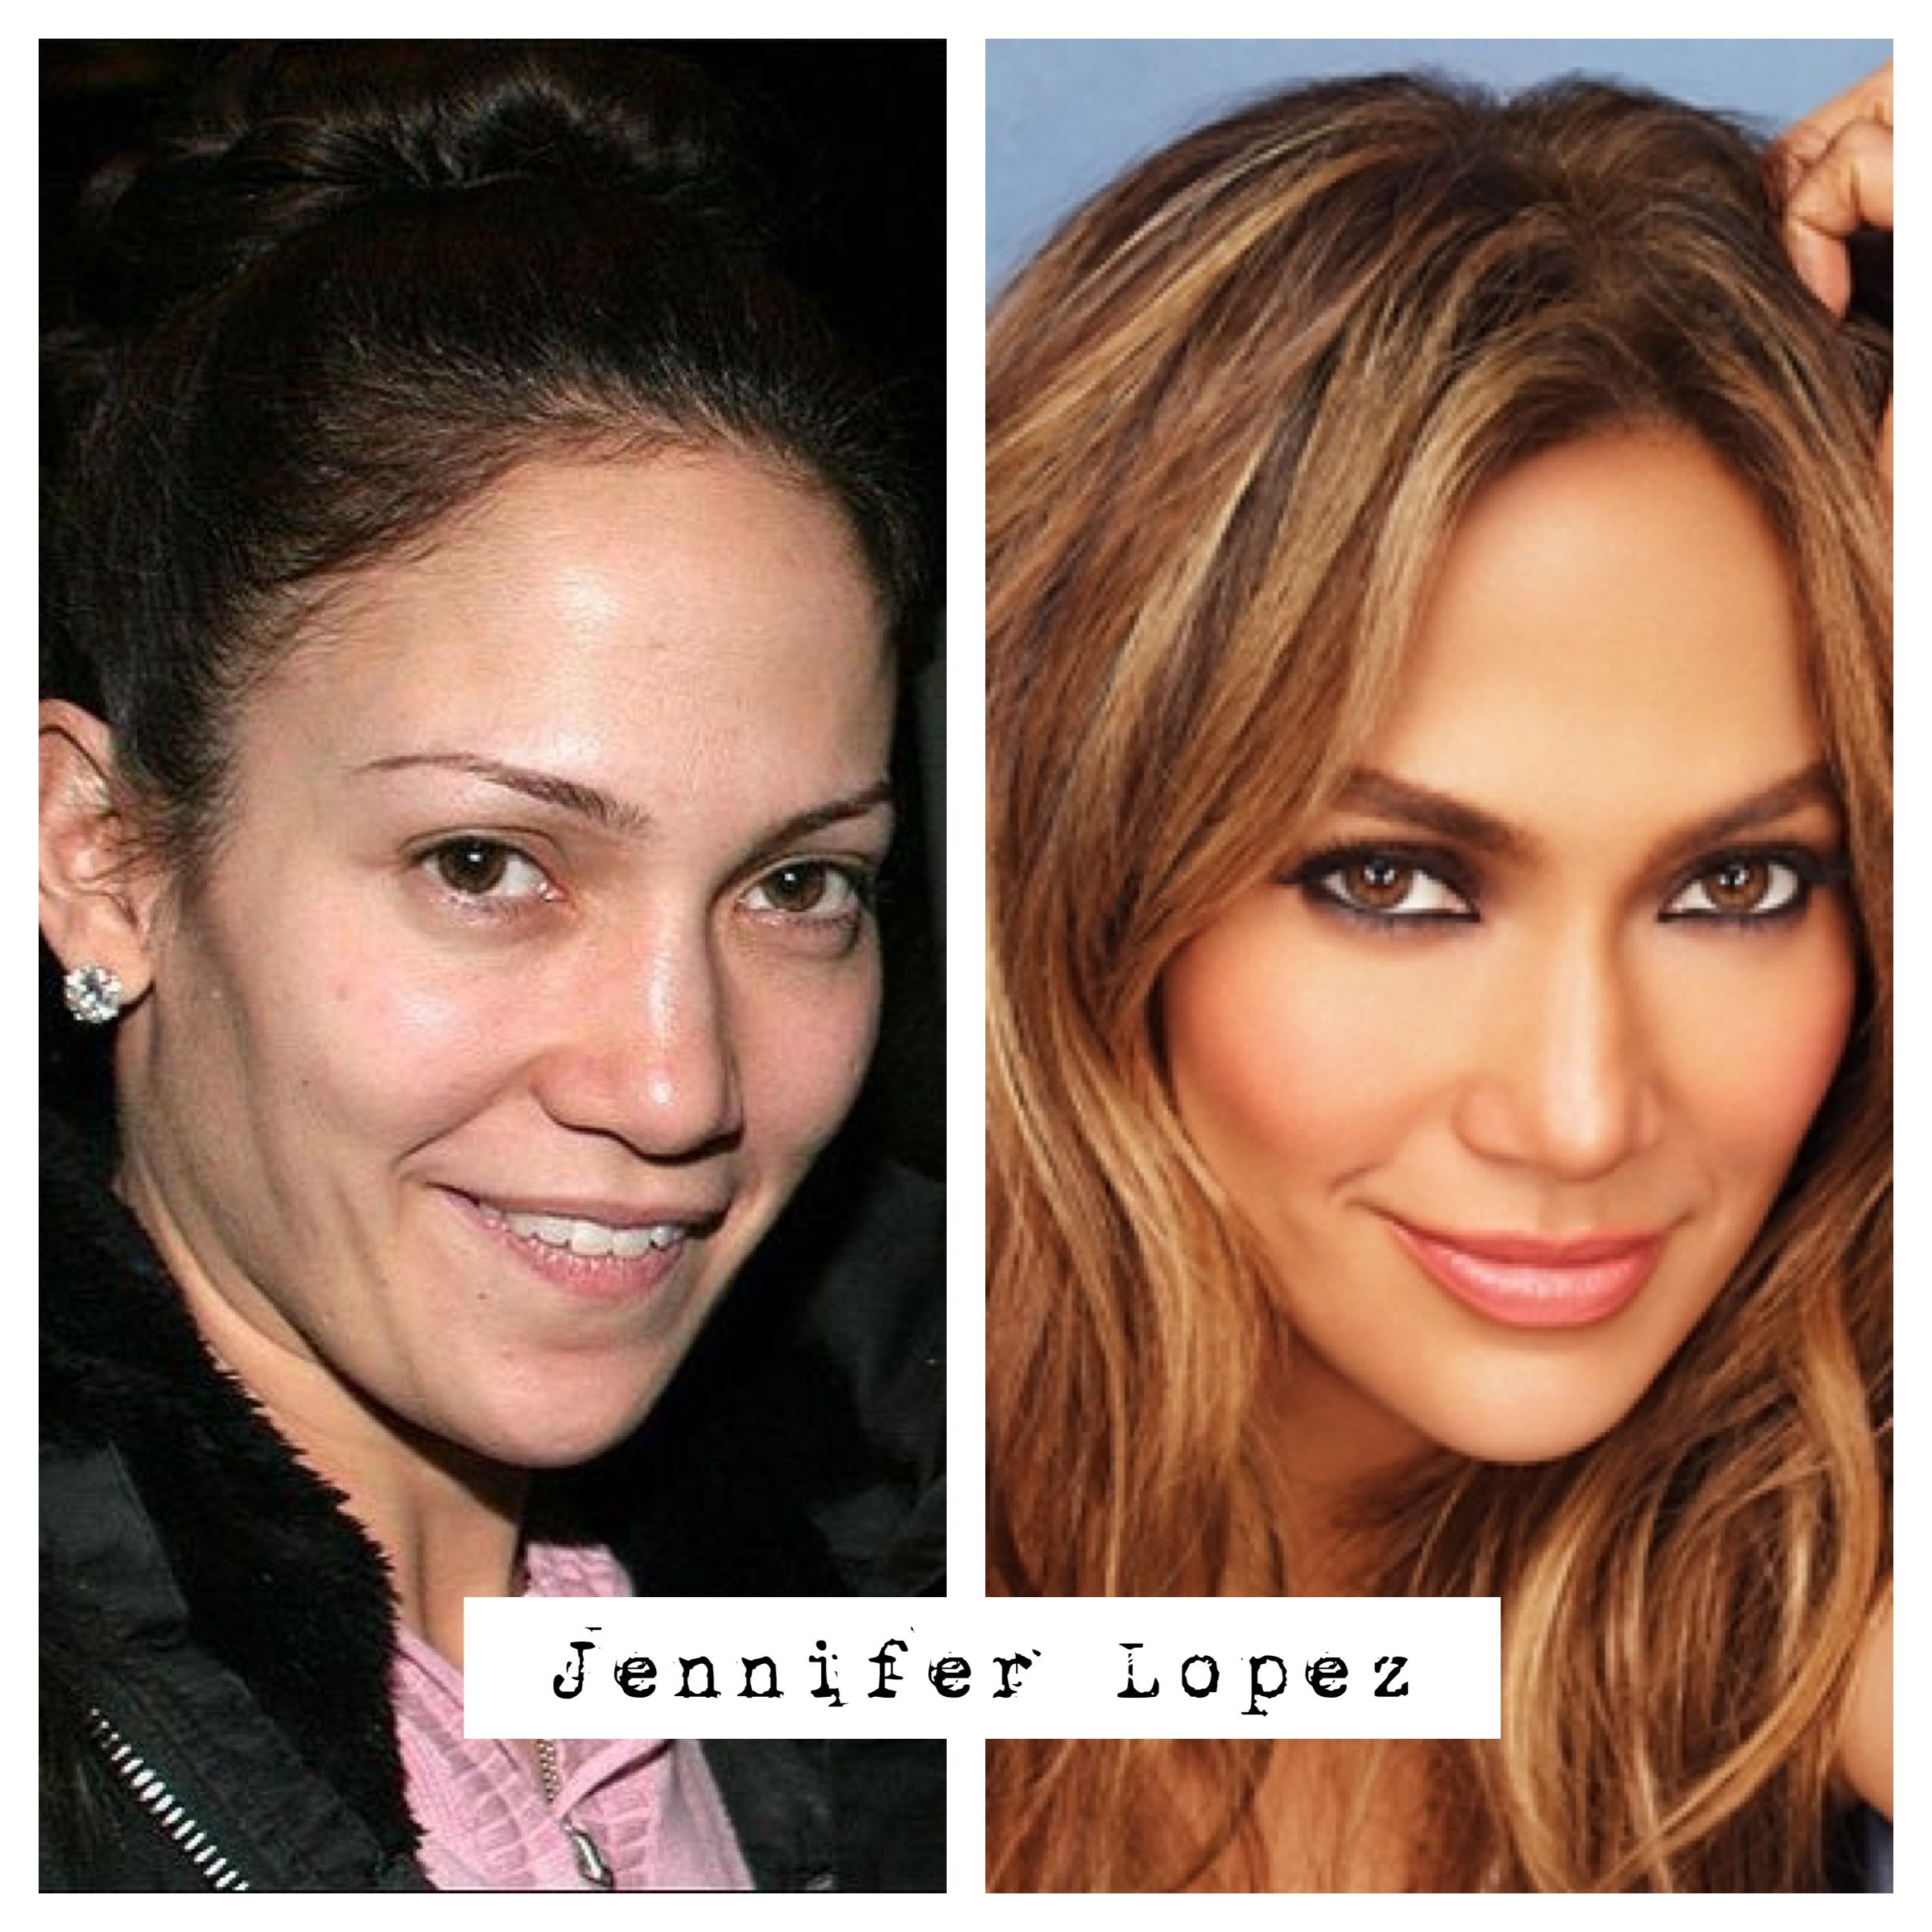 jennifer lopez no makeup before and after. | celebs with no makeup